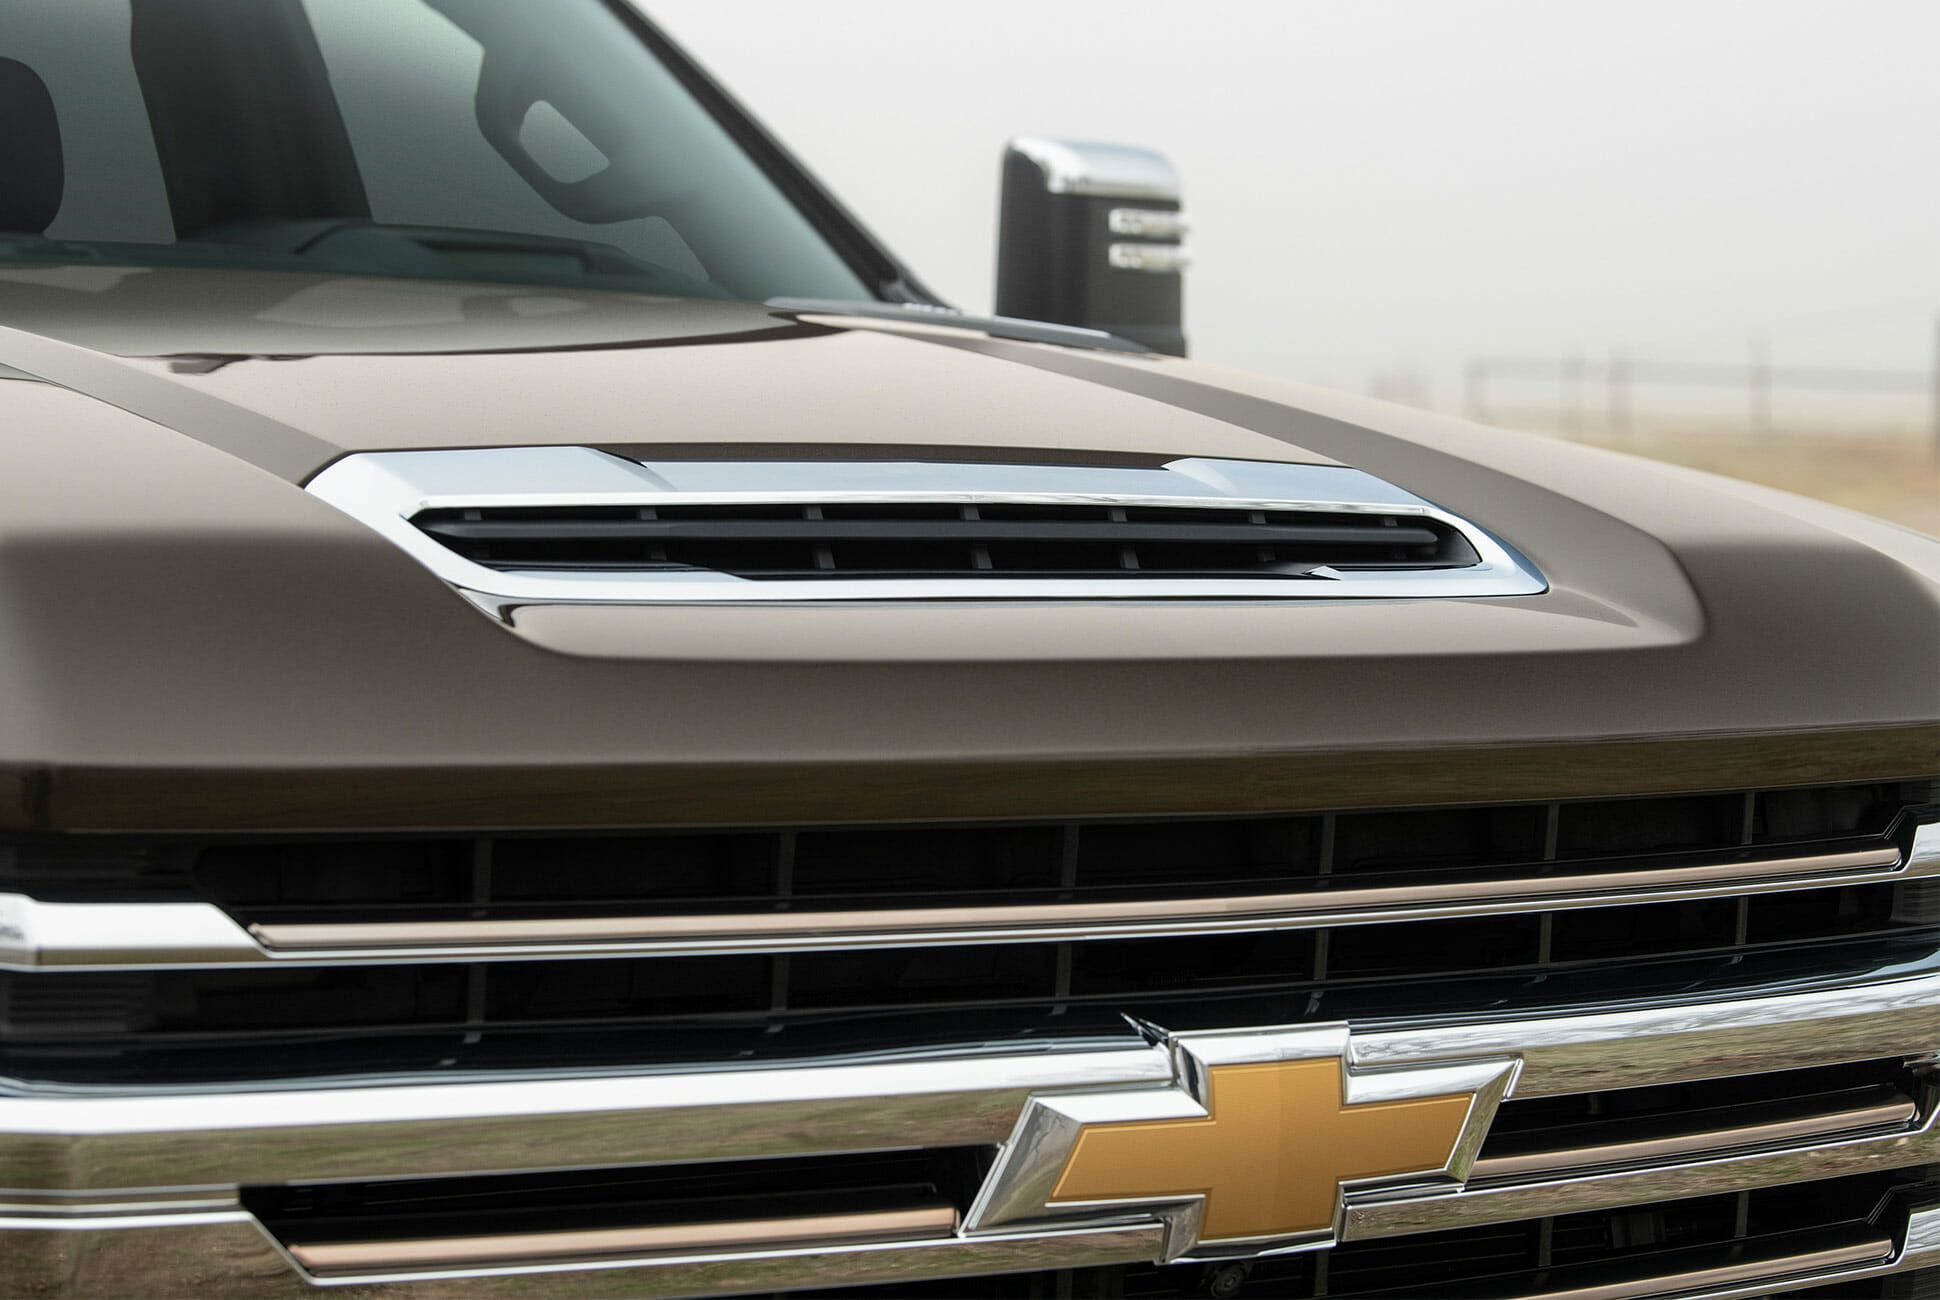 2020-Chevrolet-Silverado-2500HD-High-Country-Review-gear-patrol-slide-4